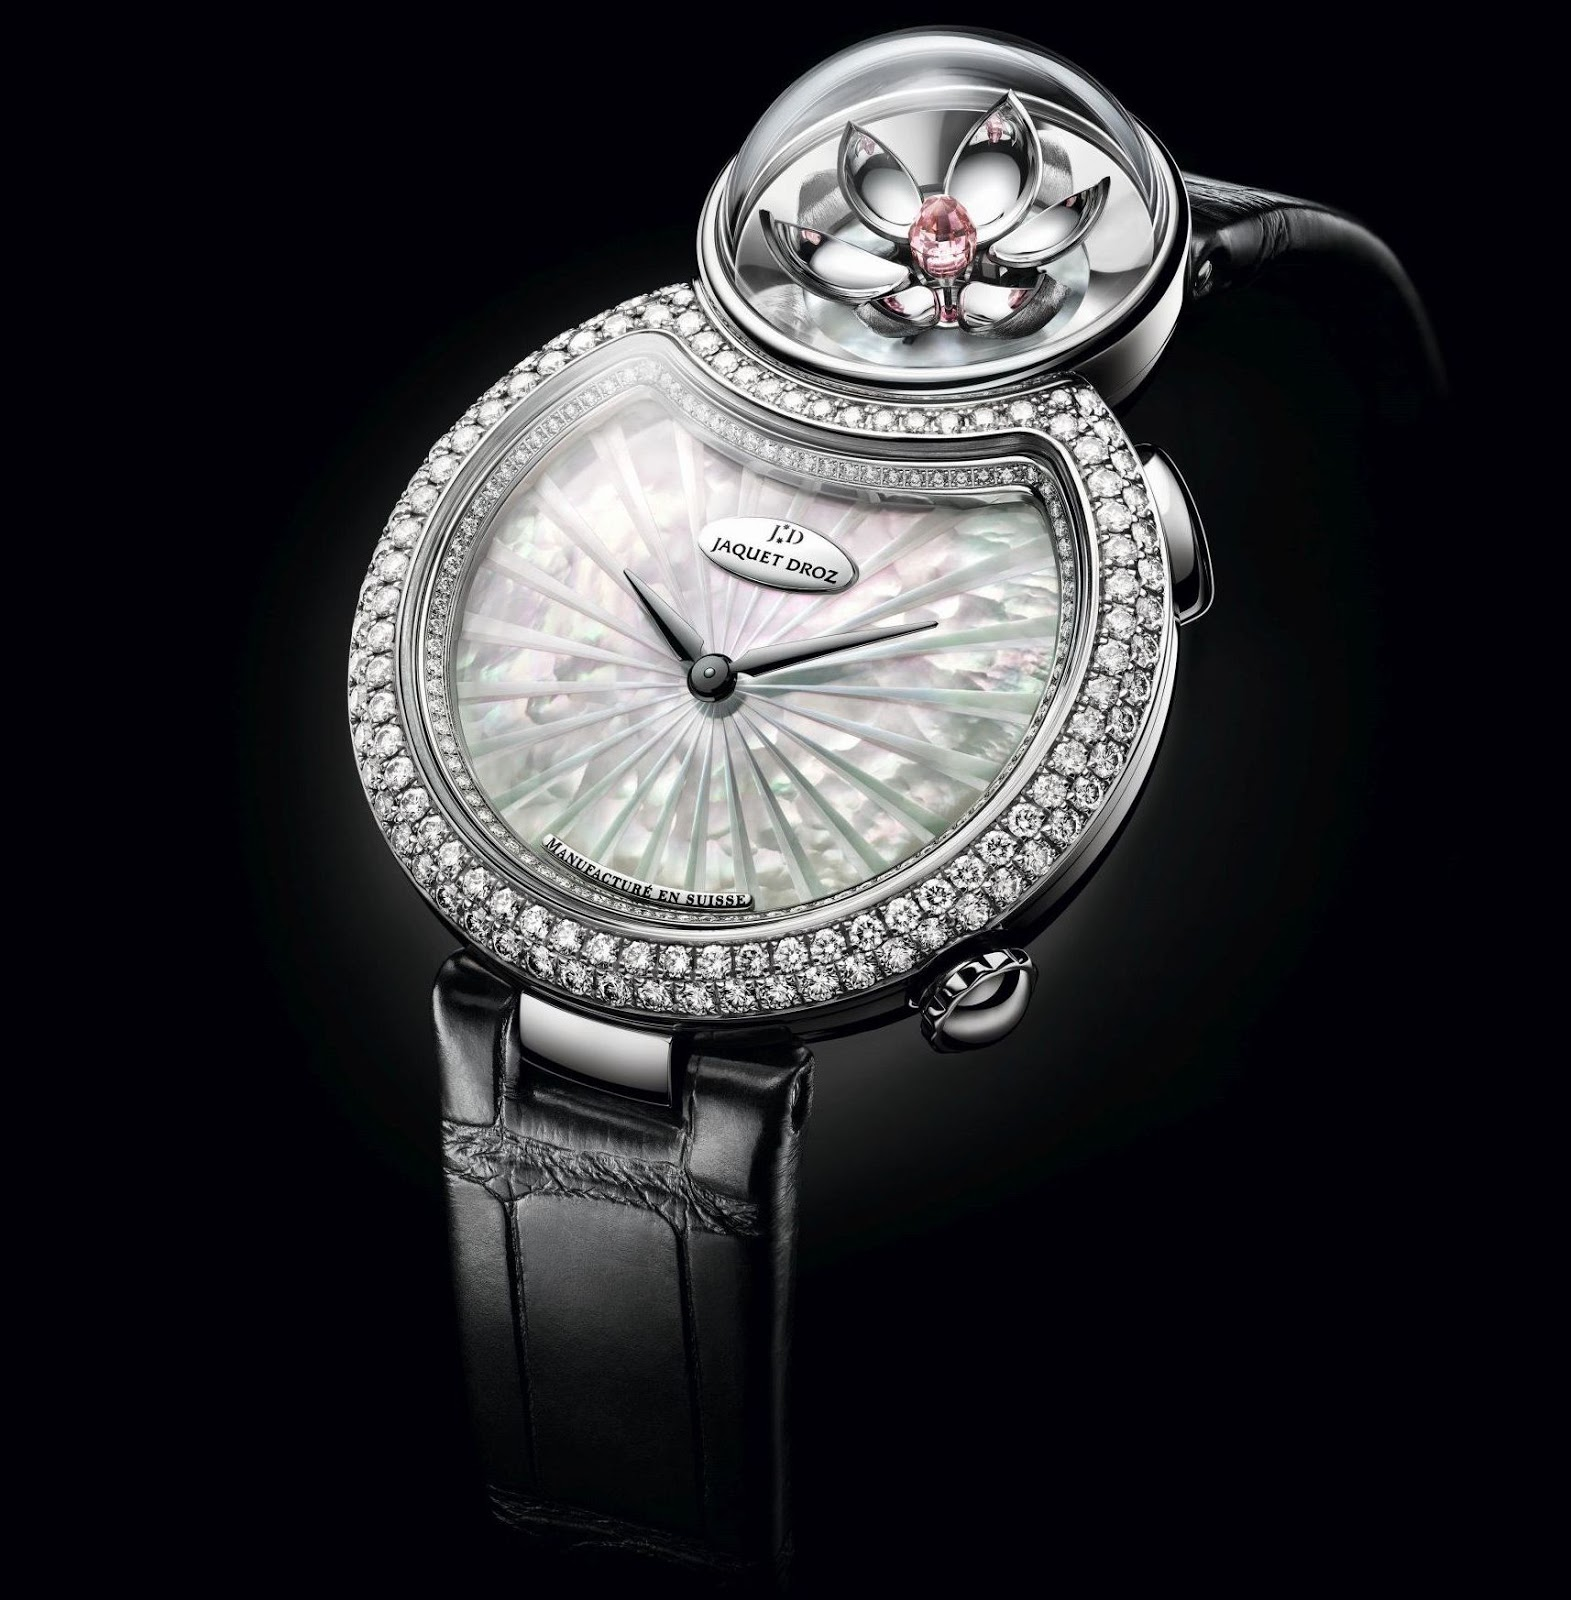 Jaquet Droz Lady 8 Flower (Reference: J032003270 & Reference